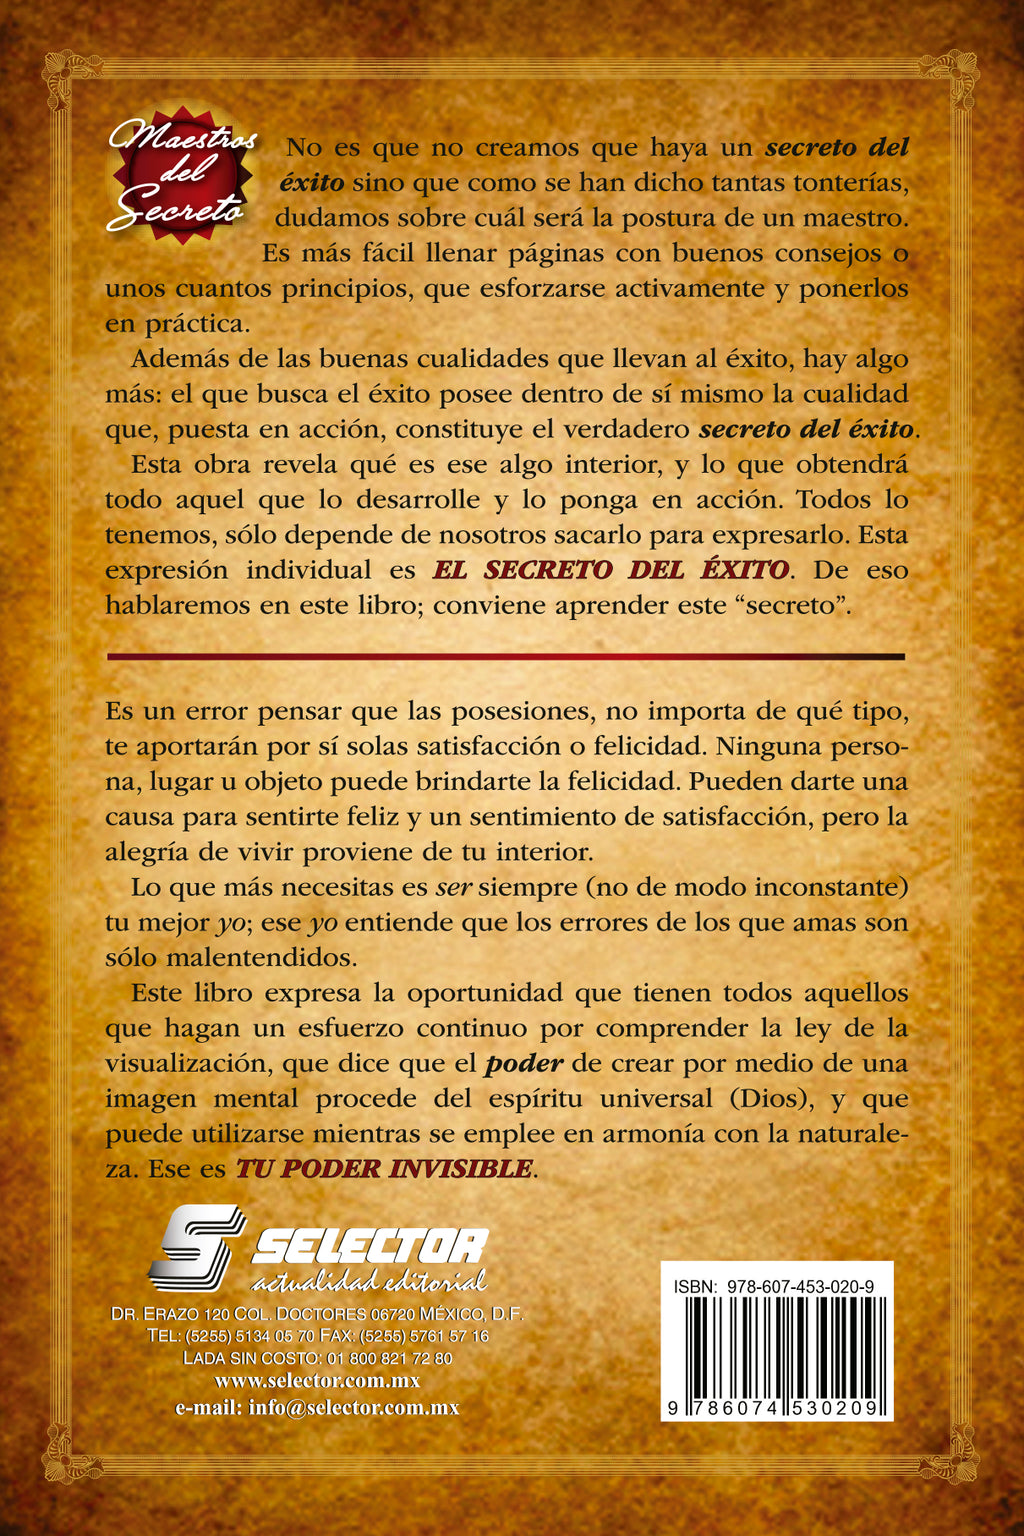 El secreto del éxito y Tu poder invisible - Editorial Selector